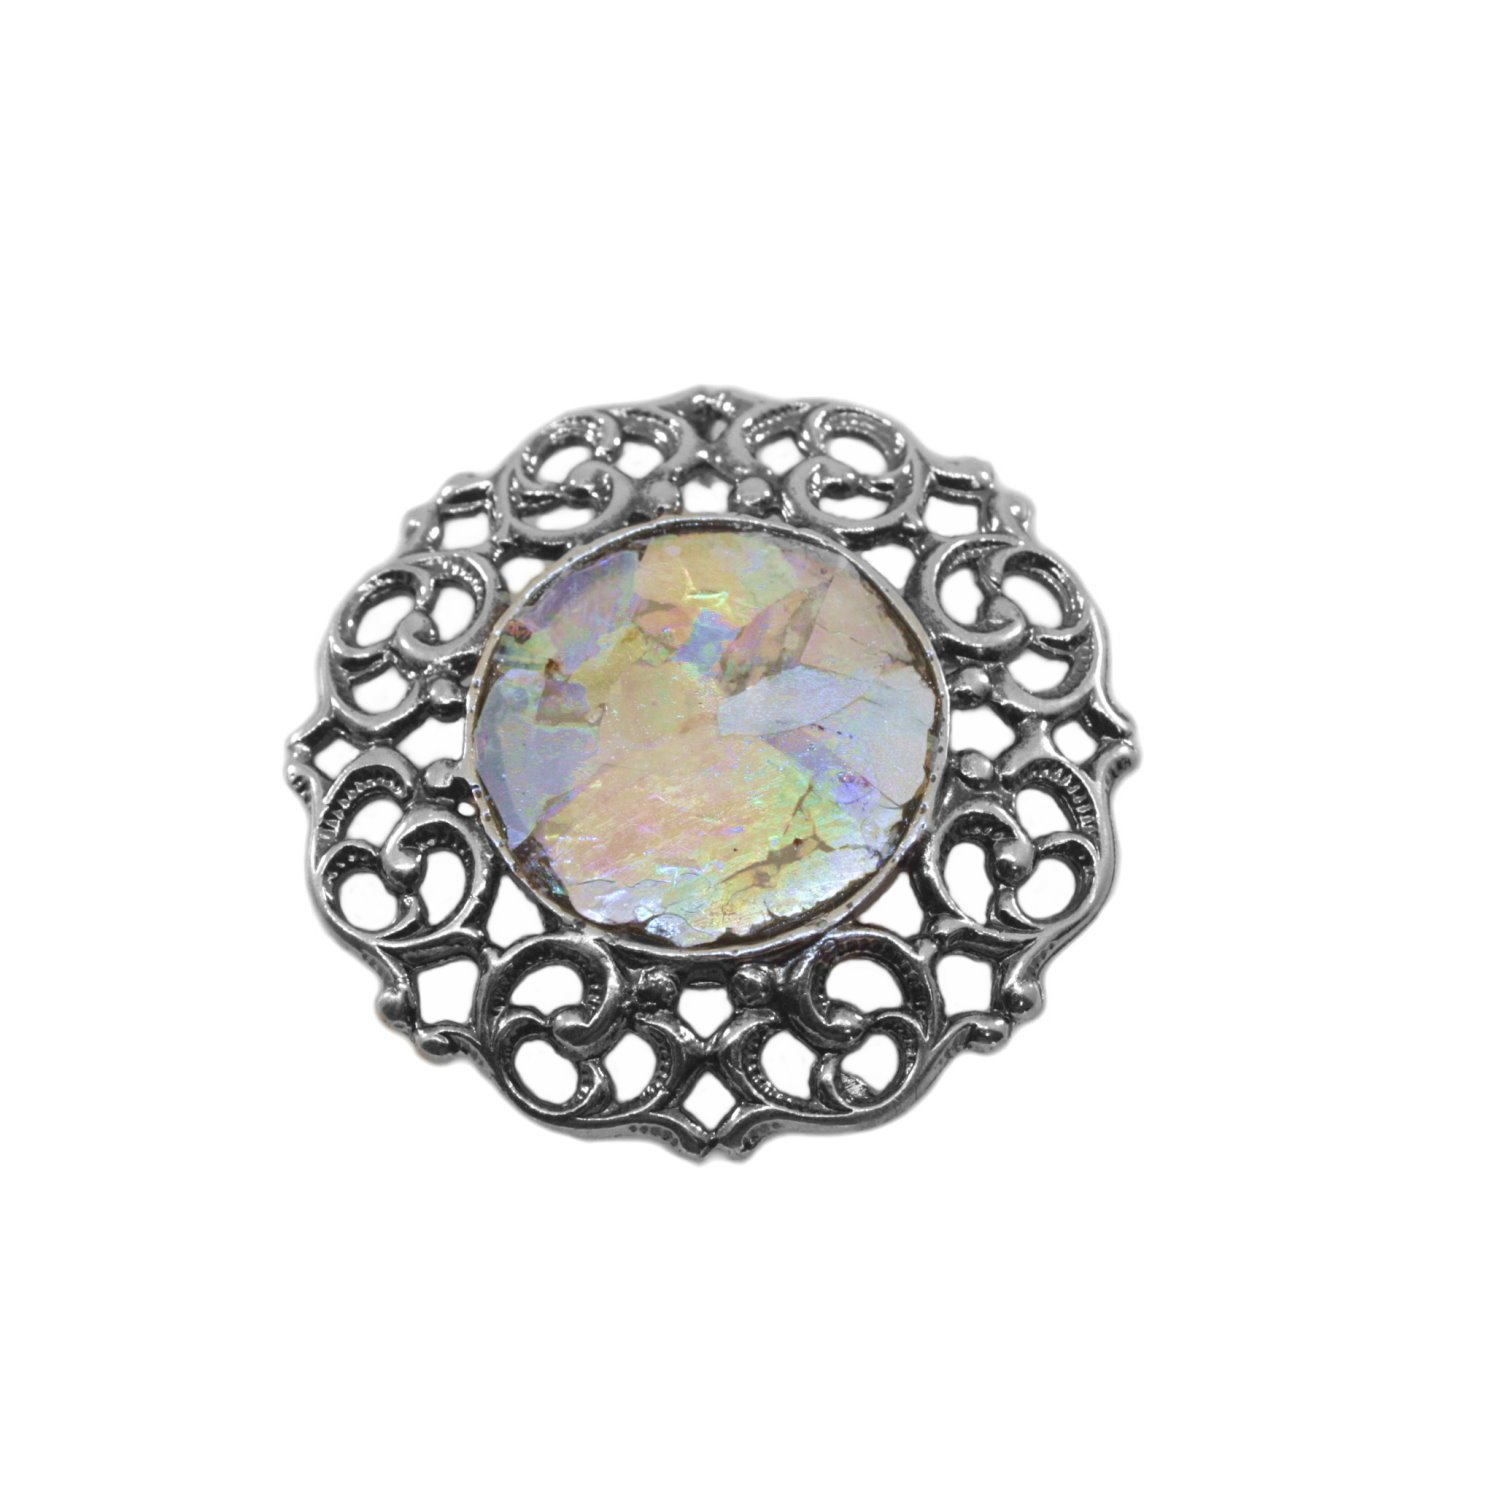 Ancient Roman Glass Pin or Pendant Filigree Multicolor Sterling Silver by Roman Glass Company